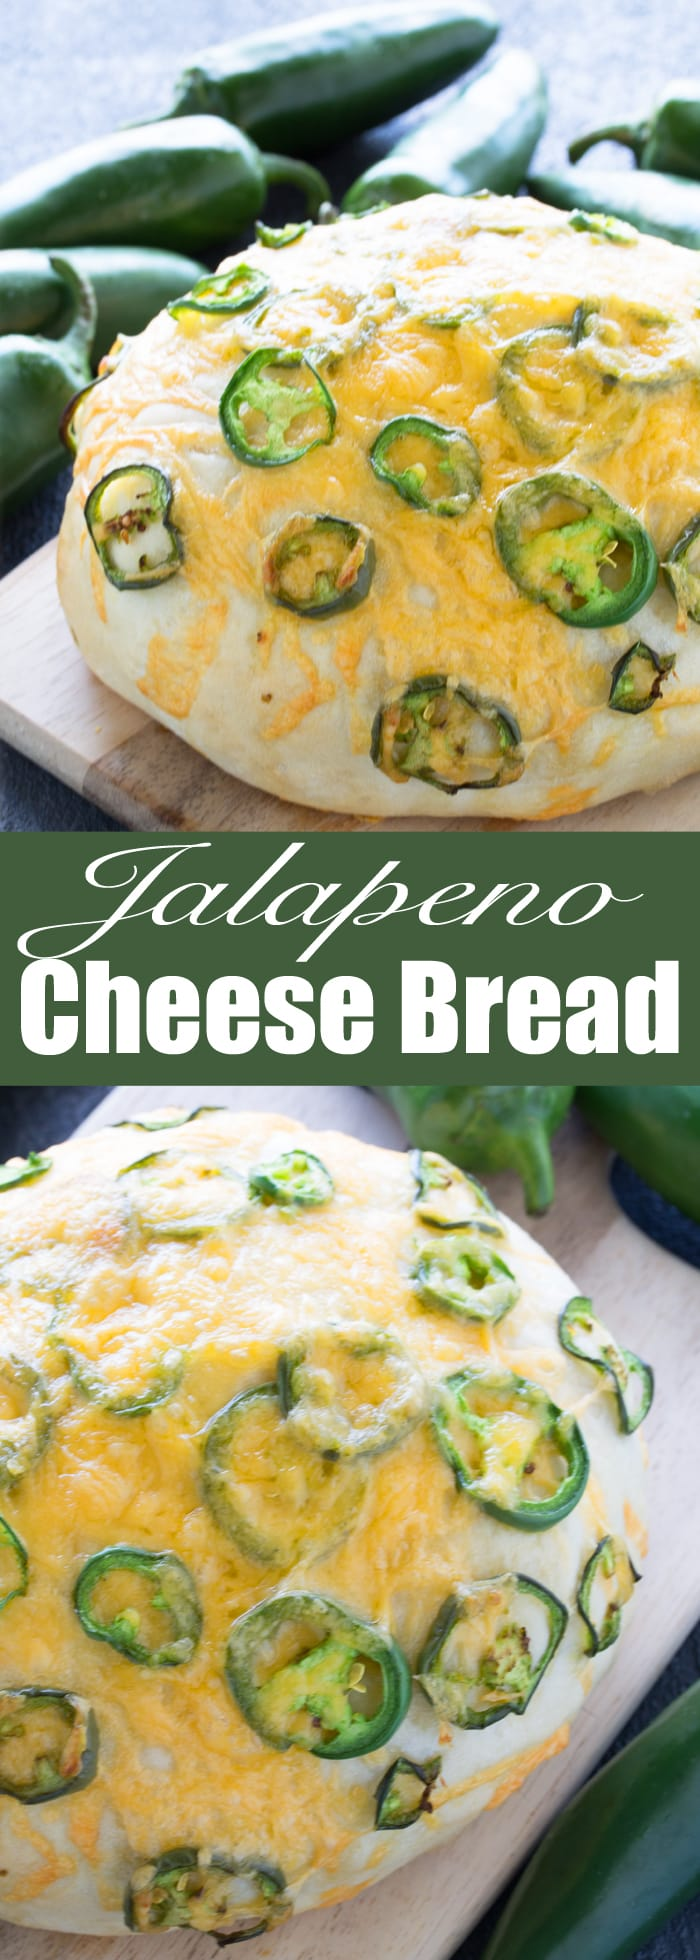 Skip the bakery and make this easy artisan Jalapeno Cheese Bread at home. Just 6 ingredients is all that is needed for this easy homemade artisan bread!